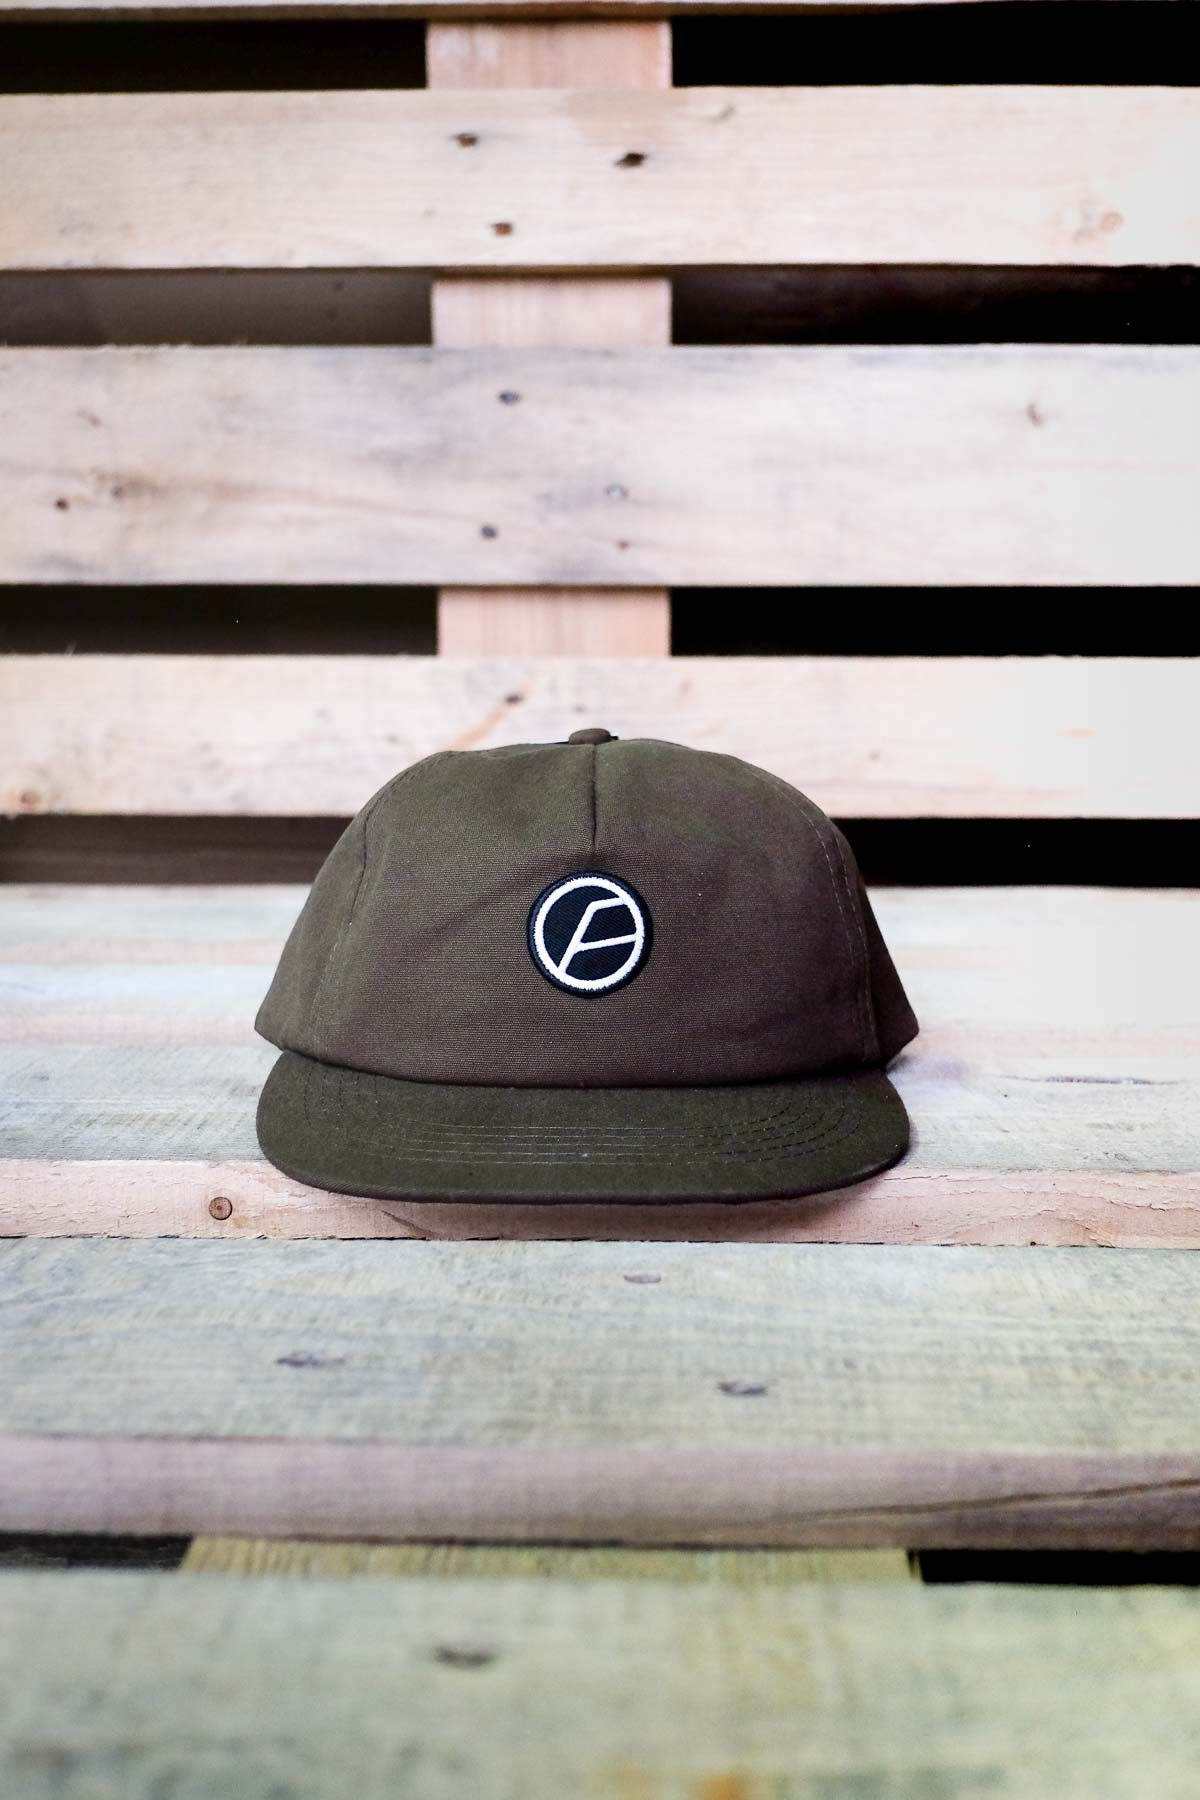 Full Mine CLASSIC SNAPBACK Olive Green